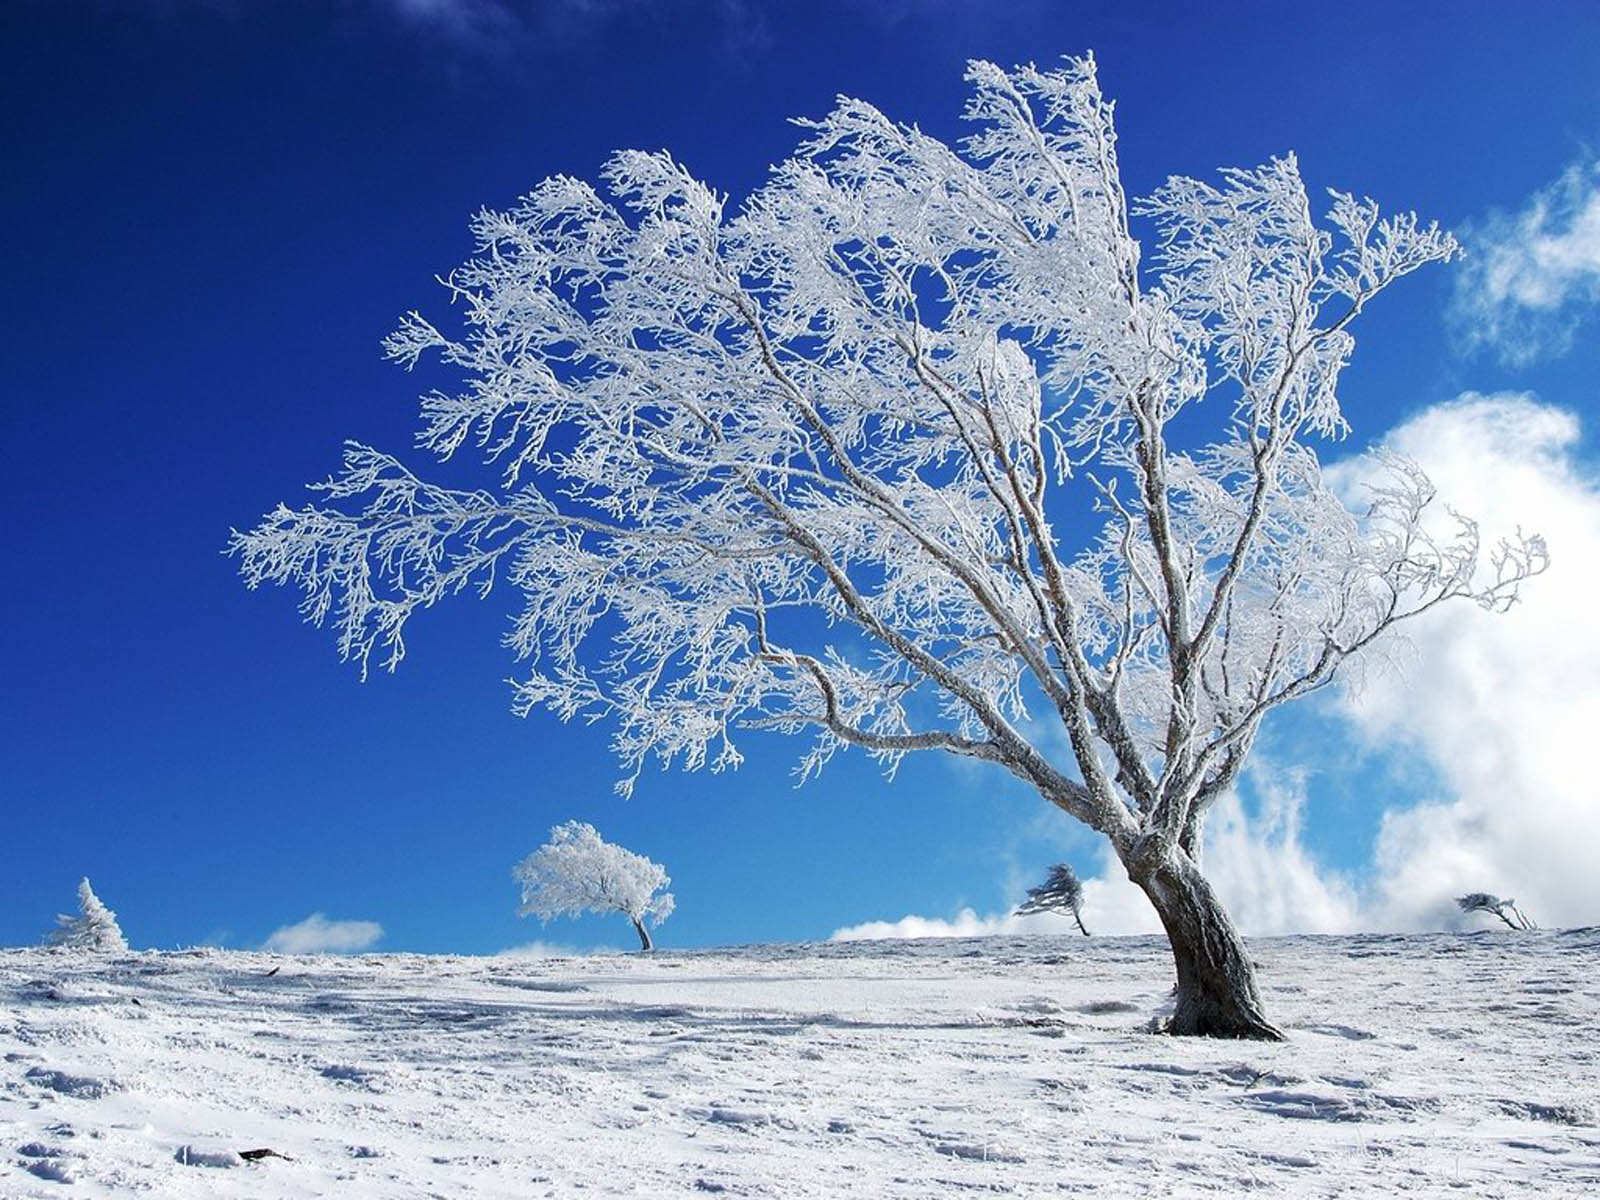 Winter Wallpaper For Pc